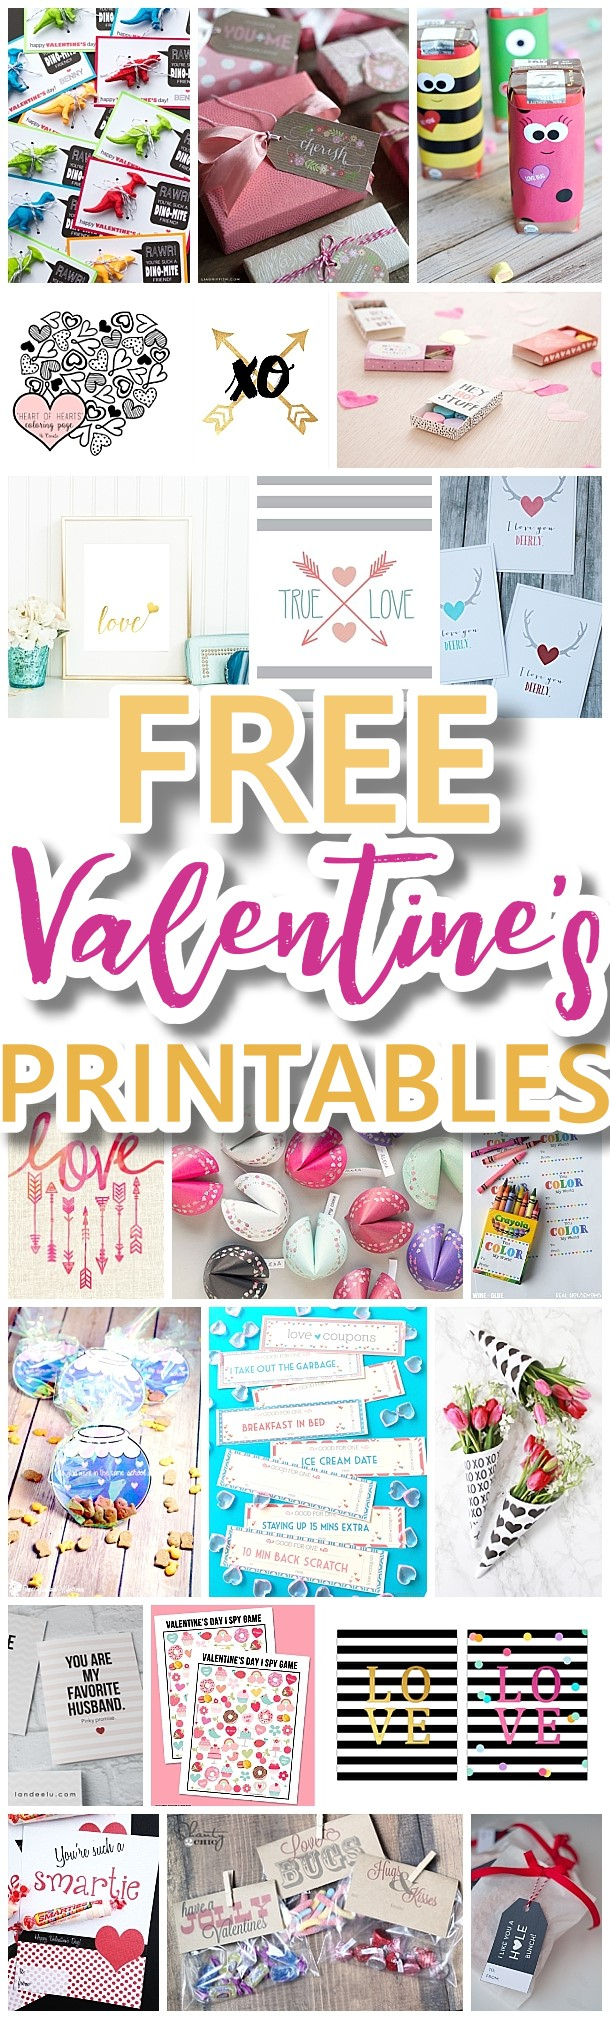 The Best Valentine's Day Free Printables – Kids Classmate Cards - Free Printable Valentine's Day Decorations